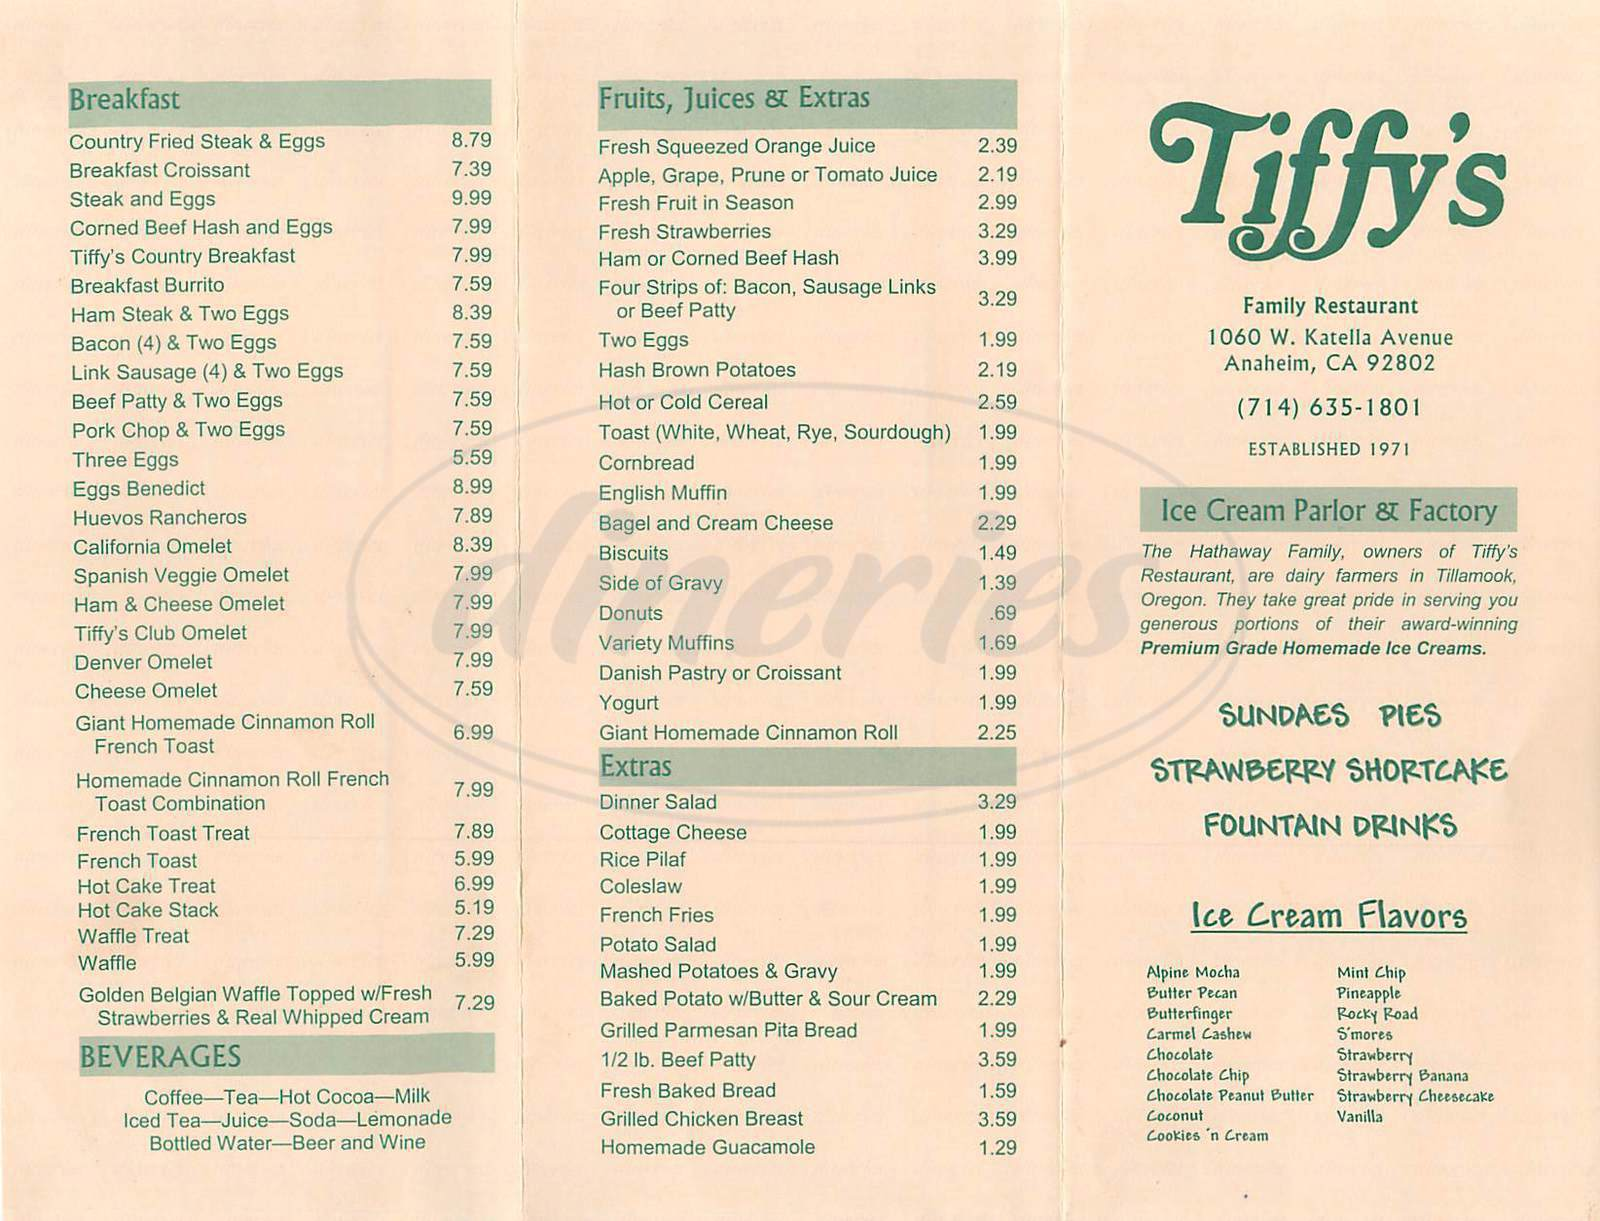 menu for Tiffys Family Restaurant